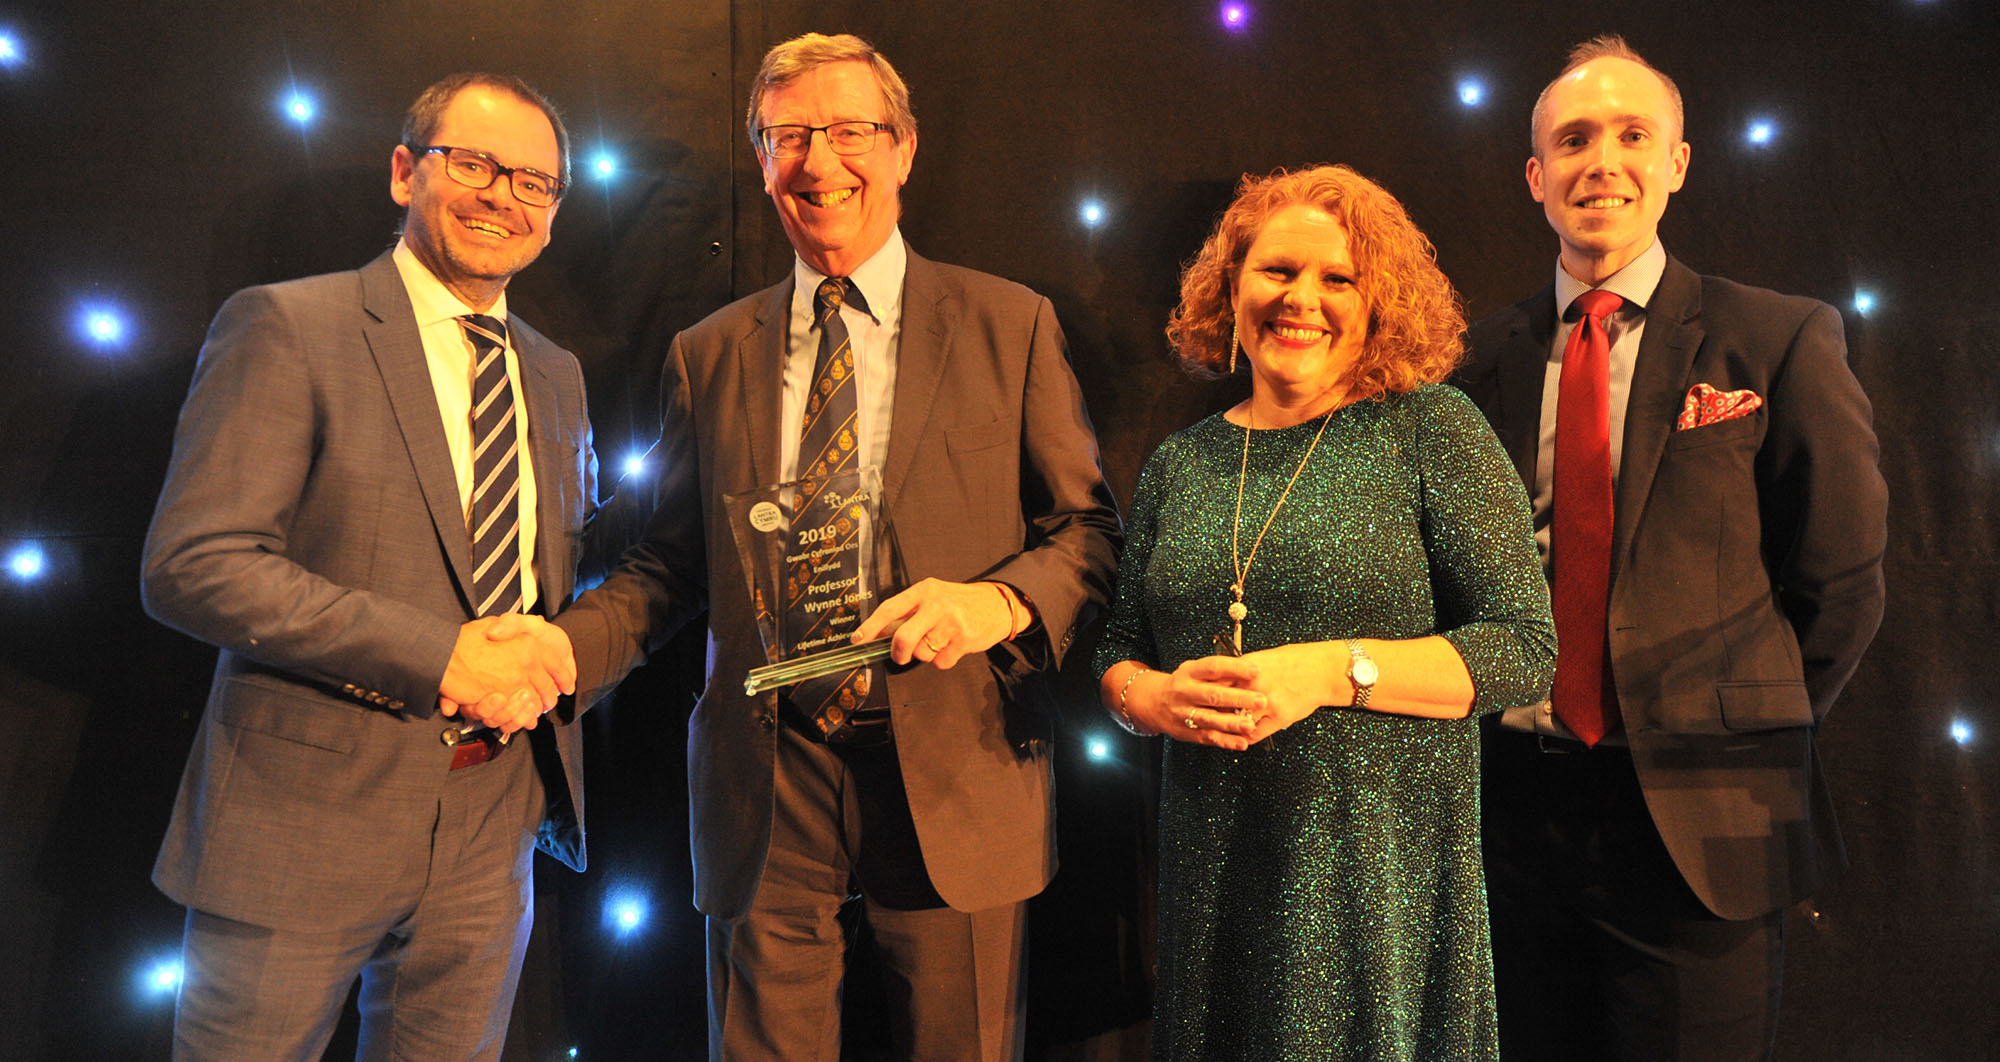 Professor Wynne Jones receiving his Lifetime Achievement Award from Mark Alexander (Welsh Government) and comperes Rachael Garside and Aled Jones